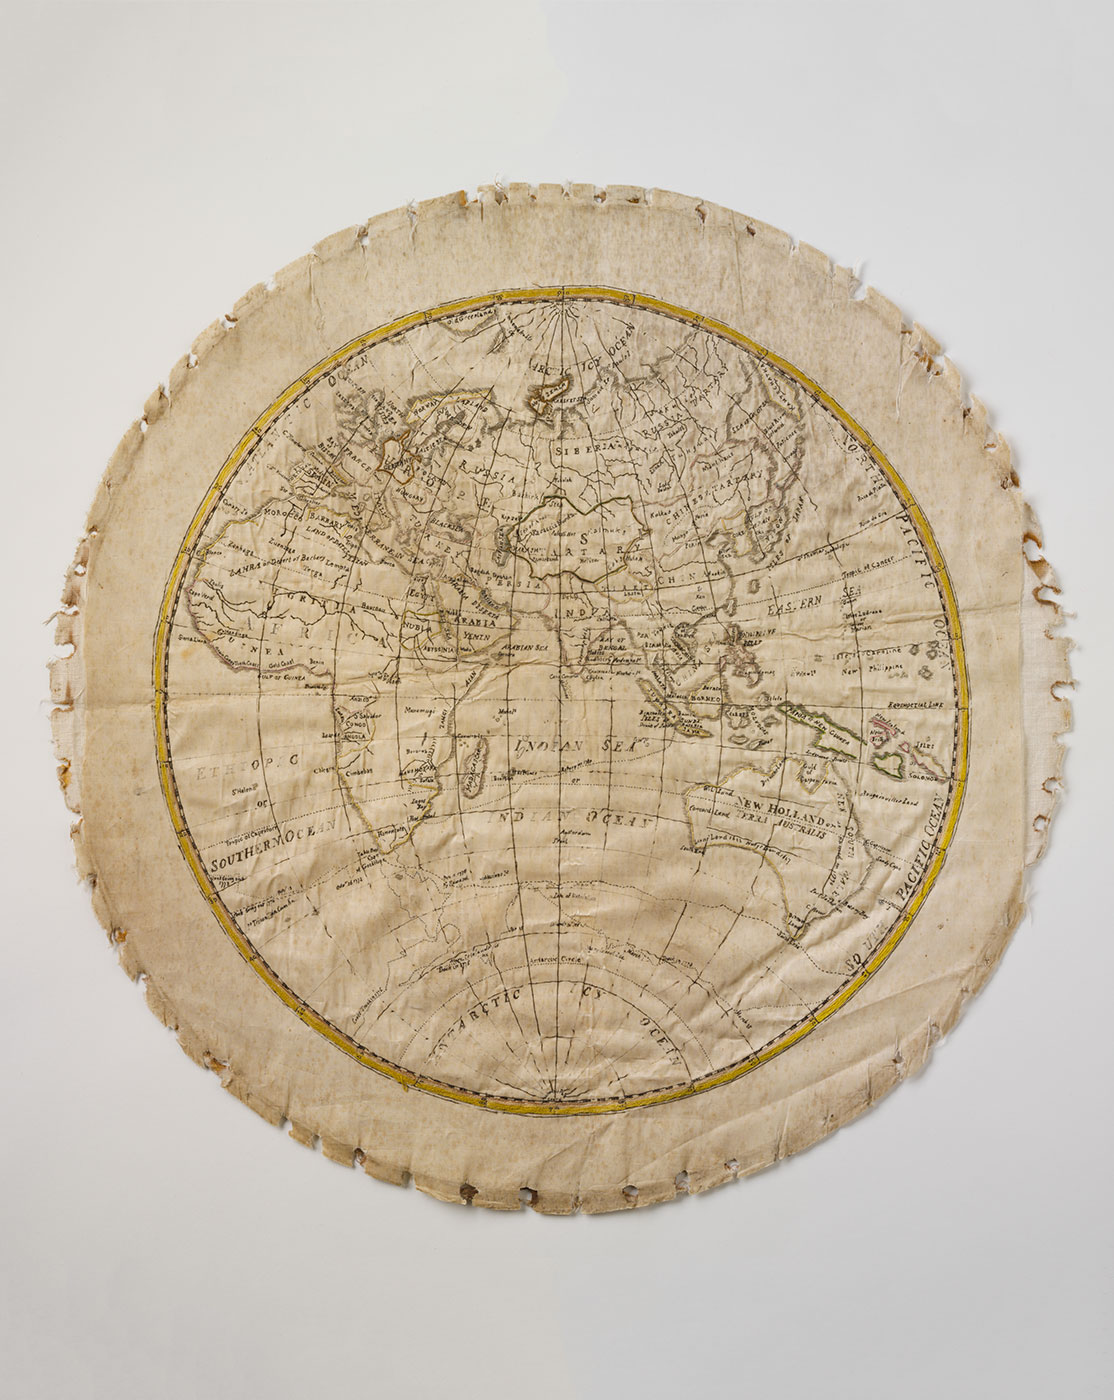 Embroidered map showing Eastern Hemisphere. - click to view larger image